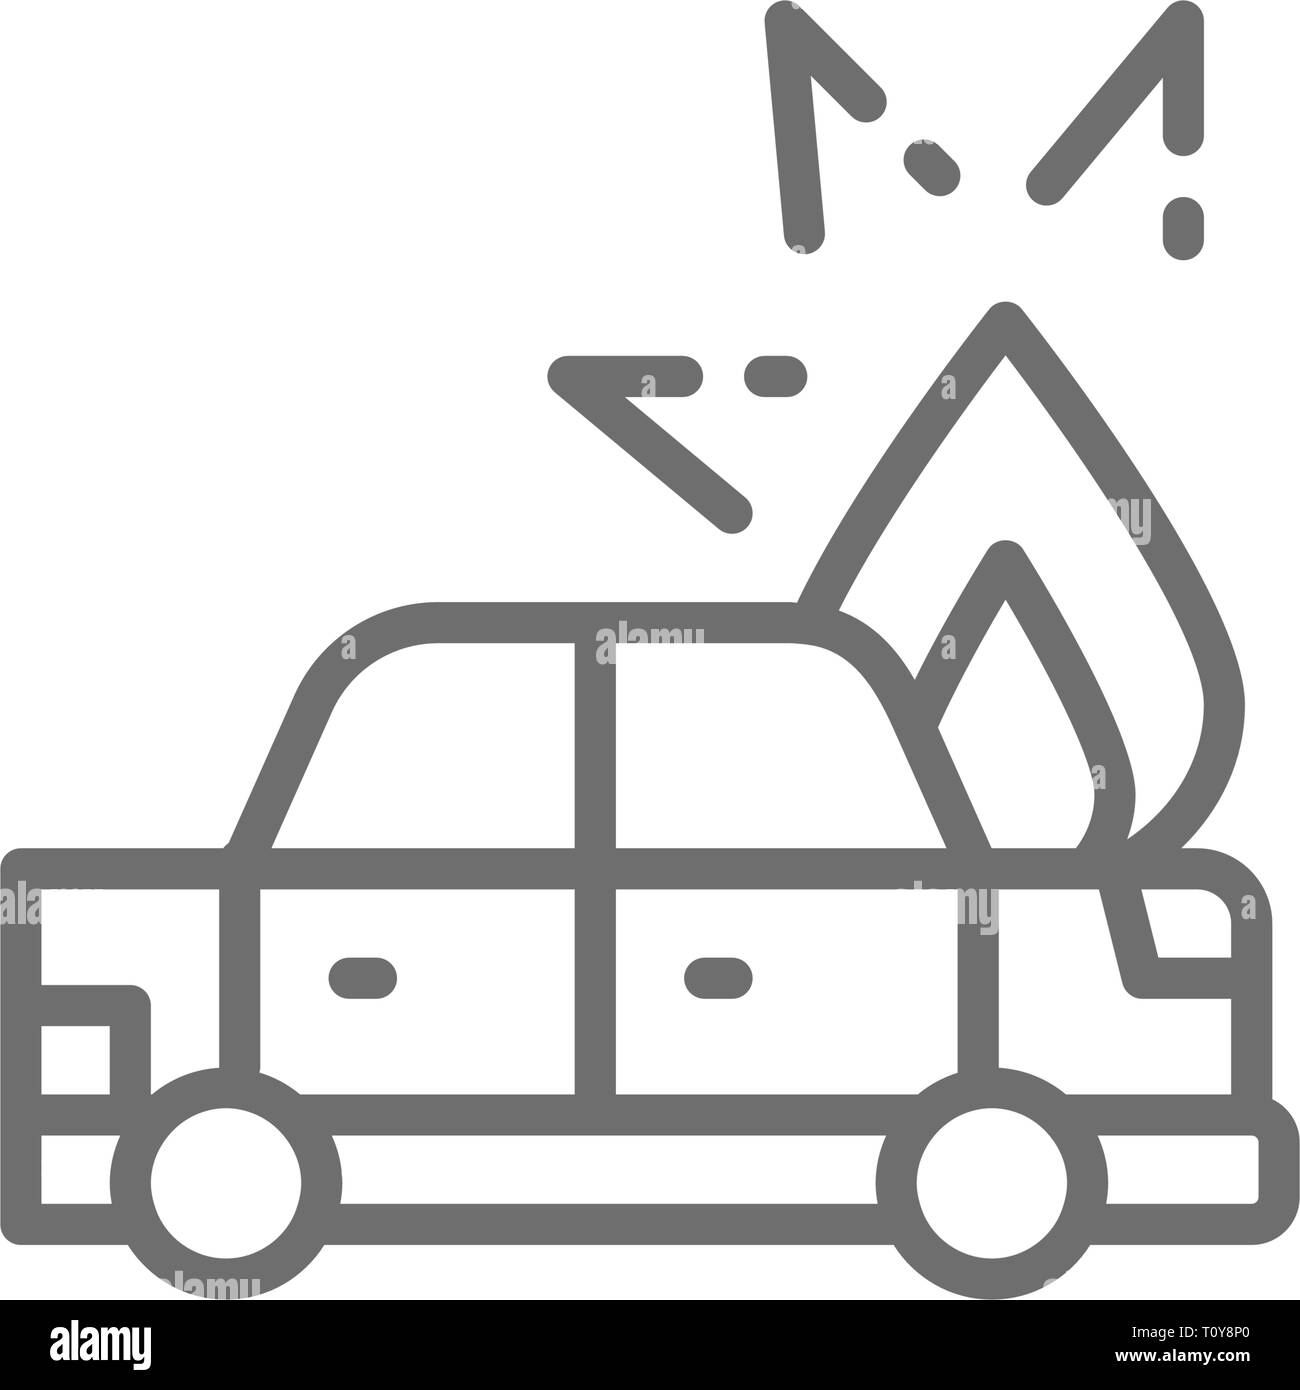 Fire under hood of car, automobile broke down, accident line icon. - Stock Image